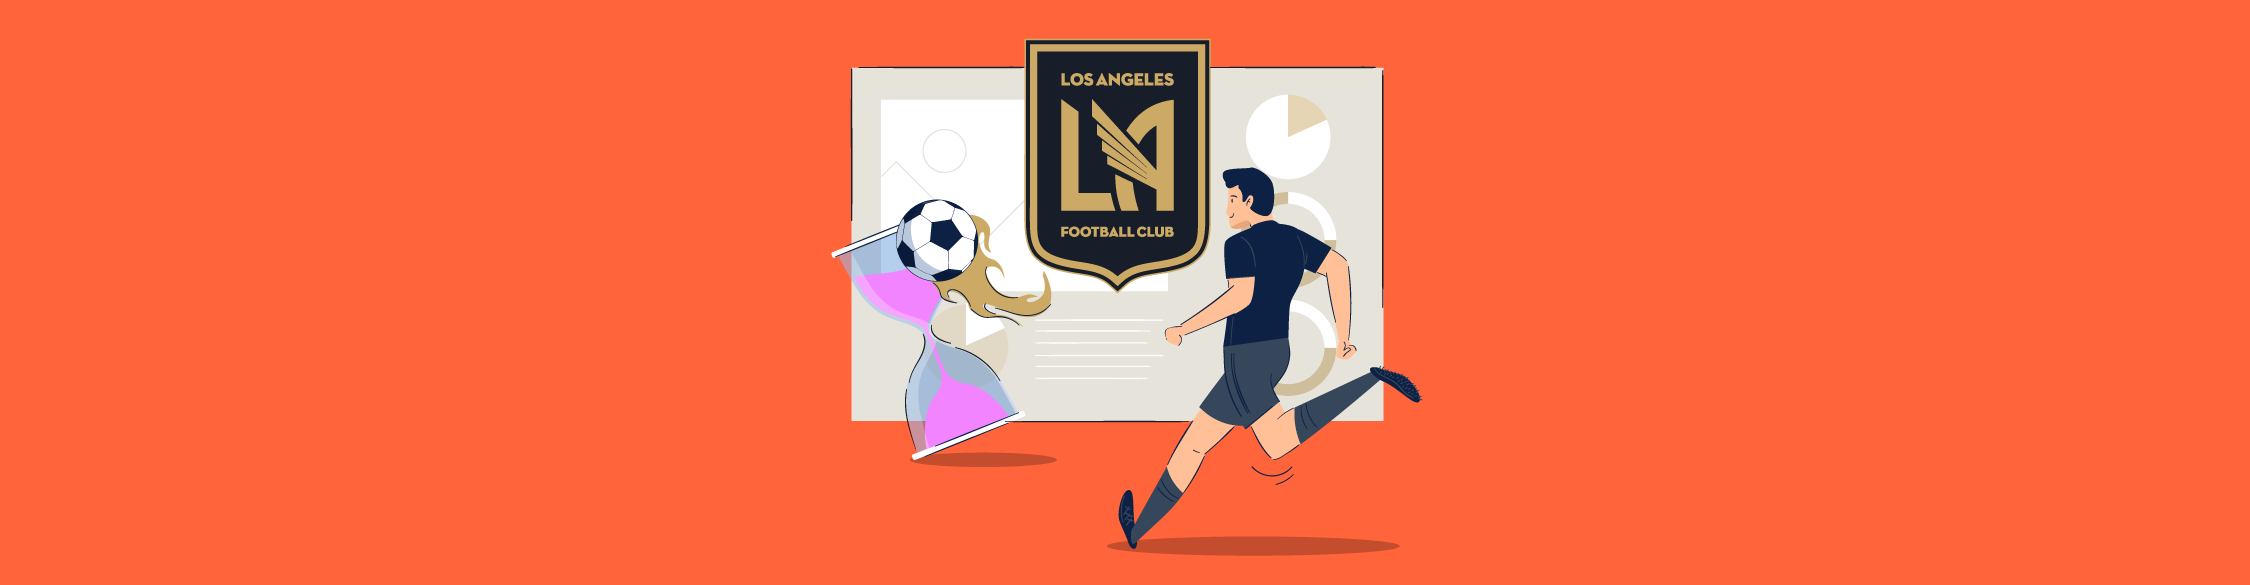 An illustration of a soccer player knocking over an hourglass with a soccer ball.